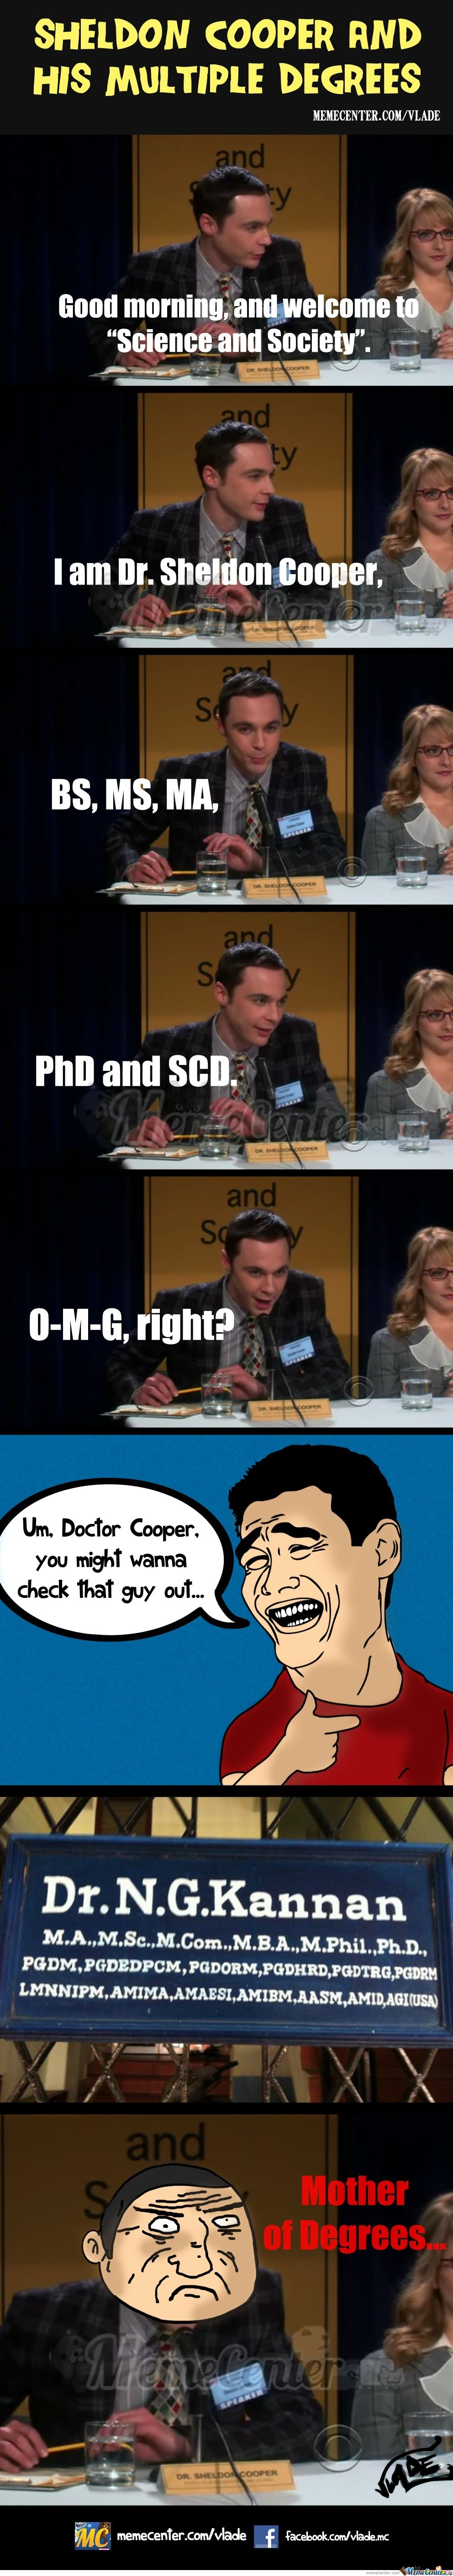 Sheldon Cooper And His Degrees